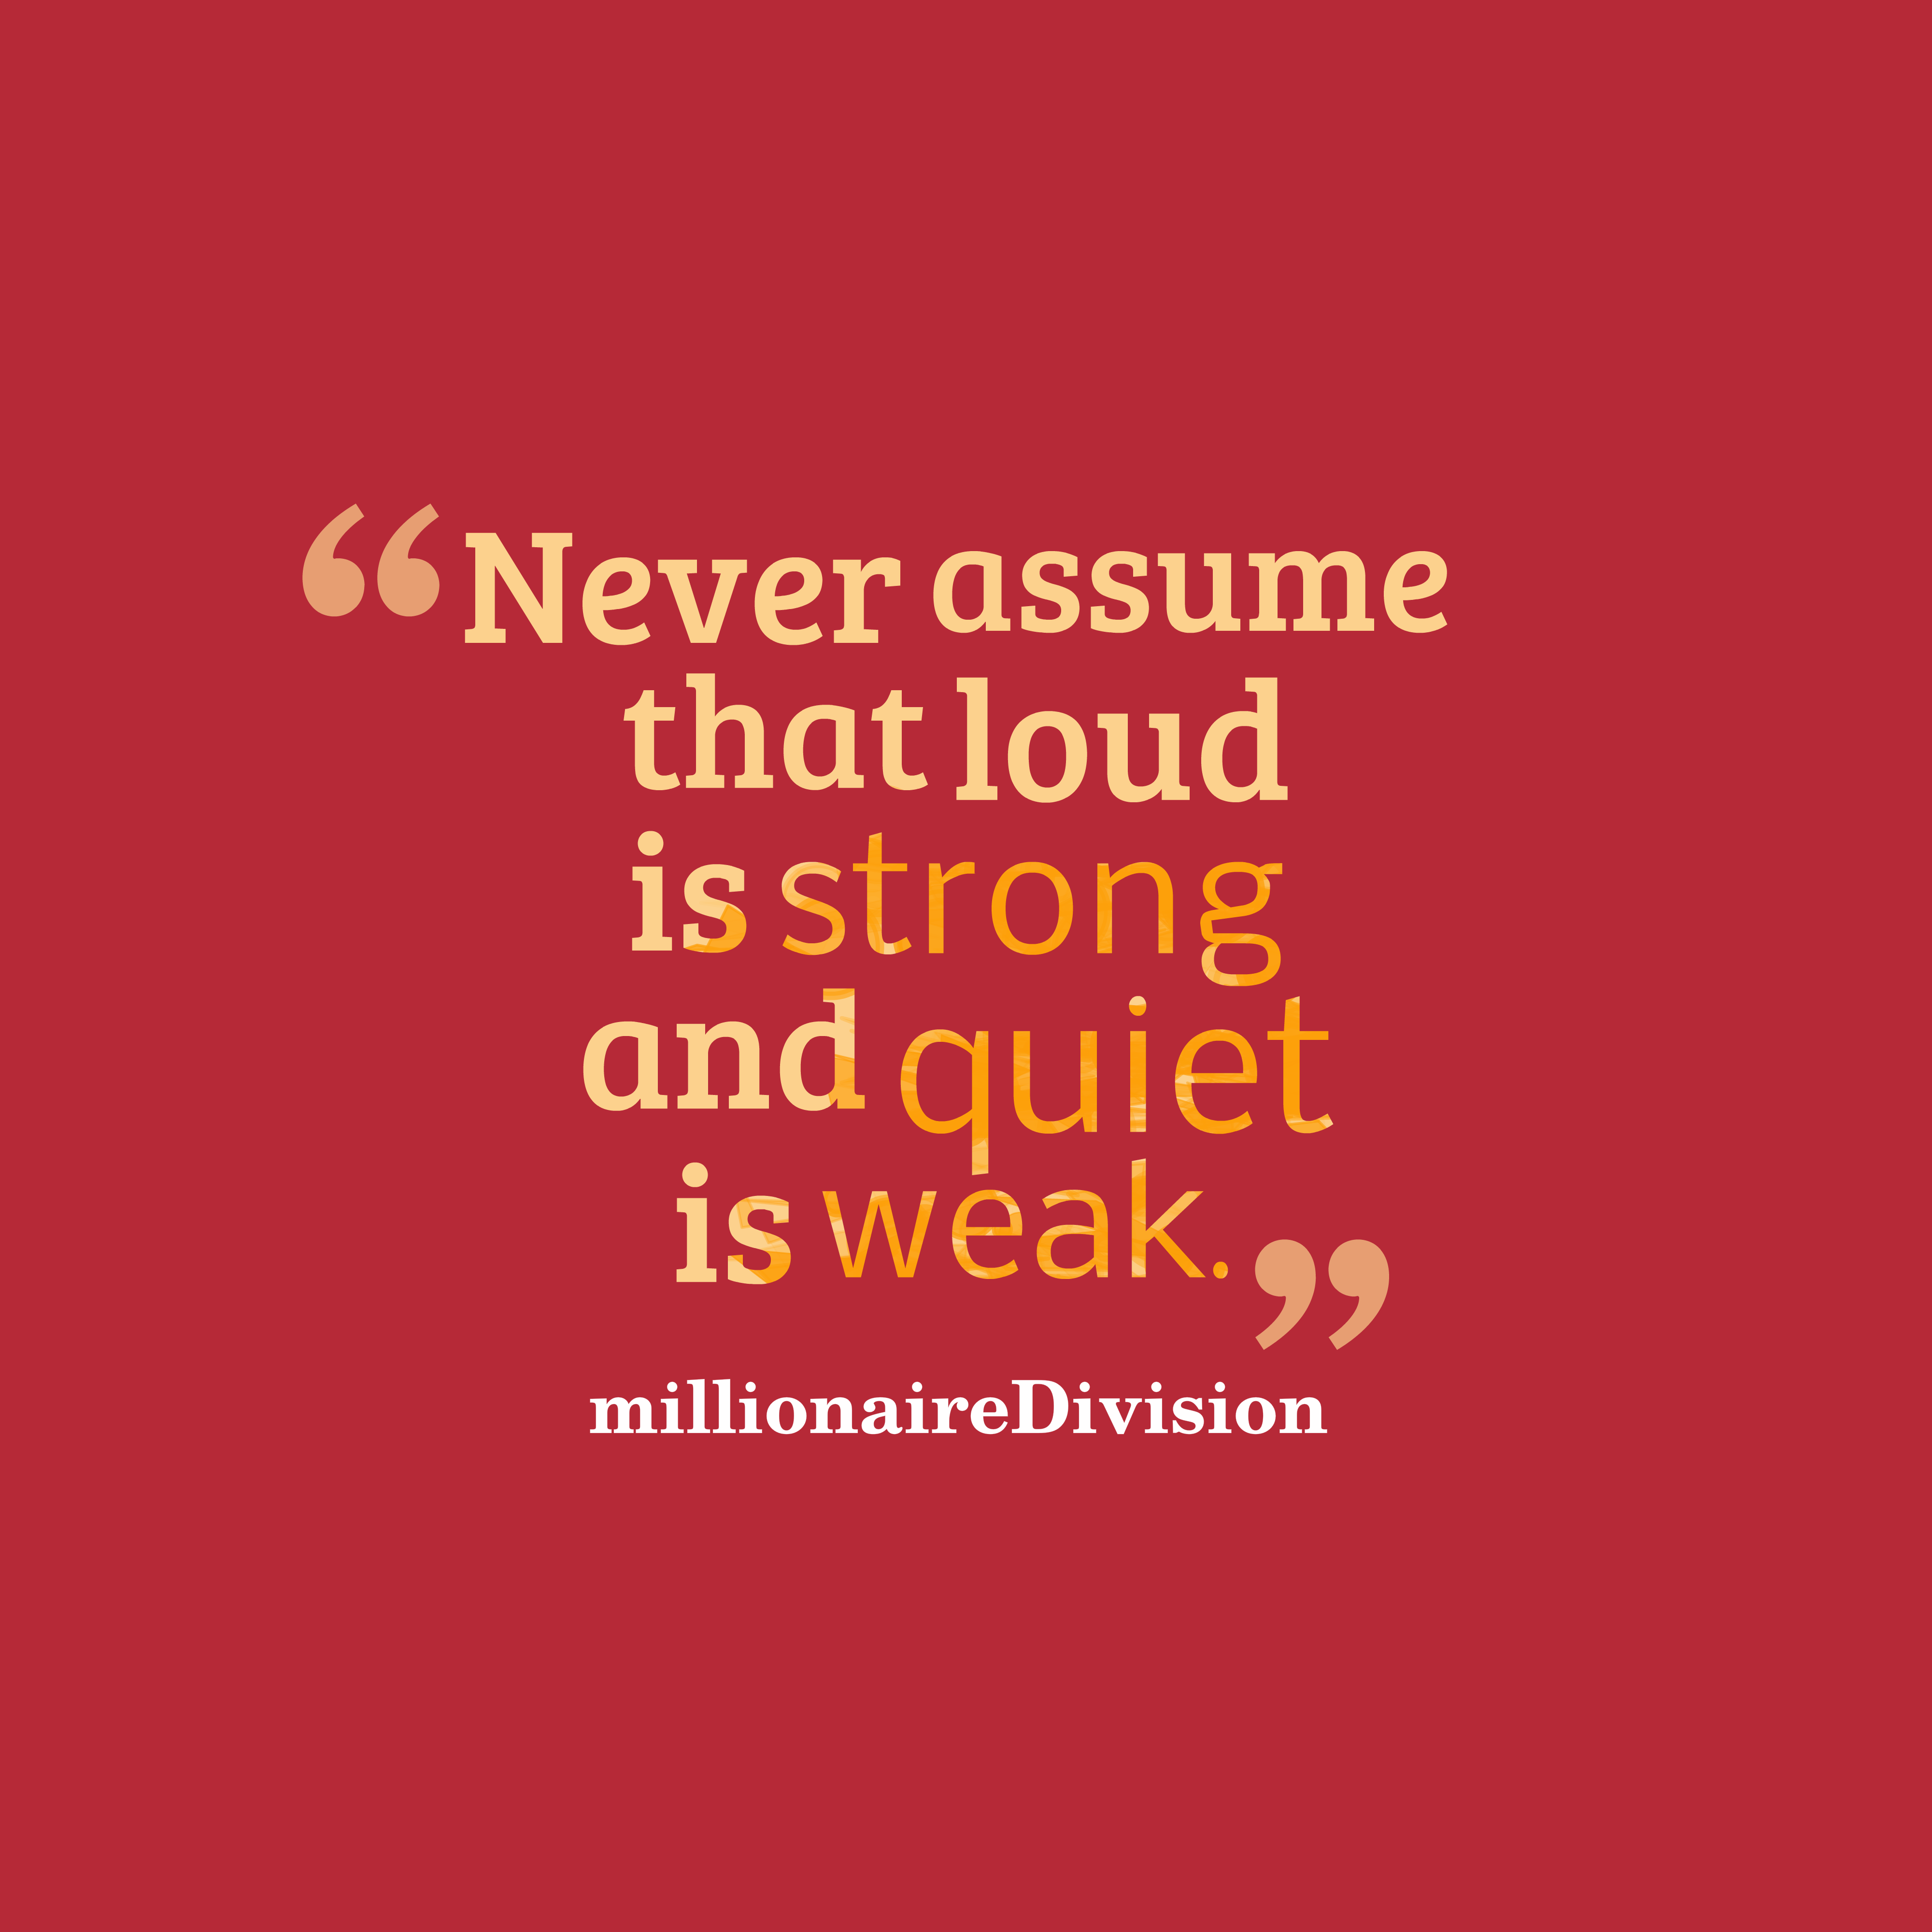 Quotes image of Never assume that loud is strong and quiet is weak.